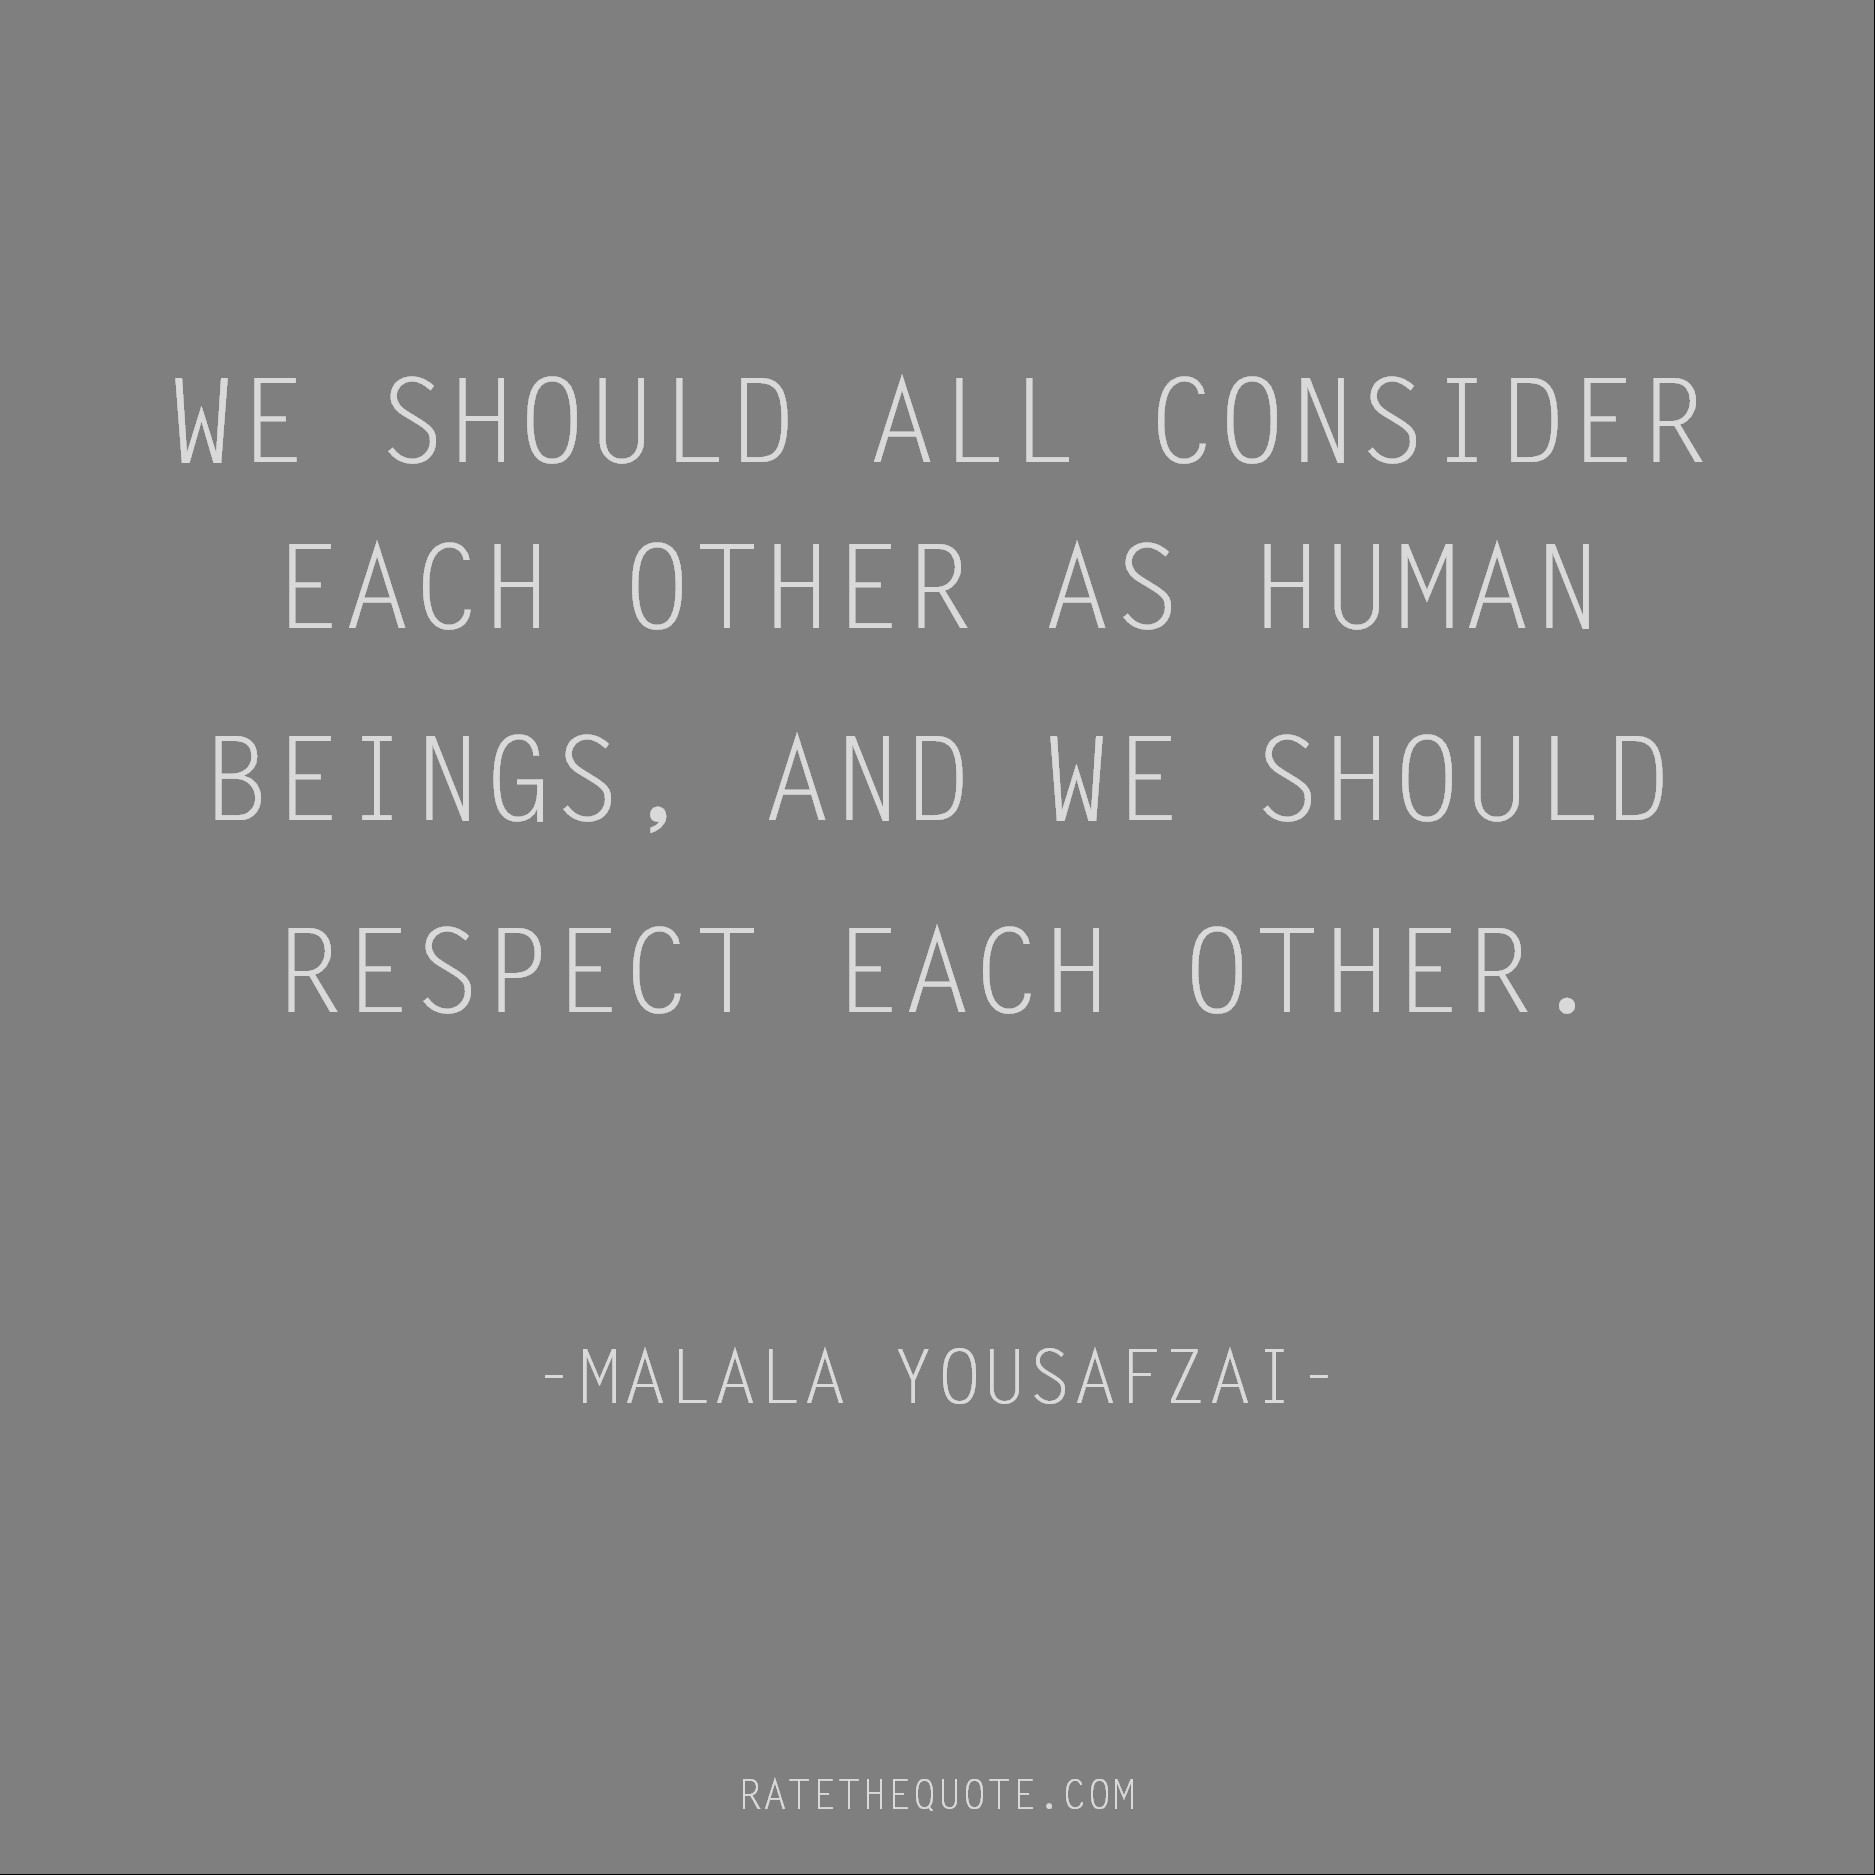 Quotes About Respect Ratethequote